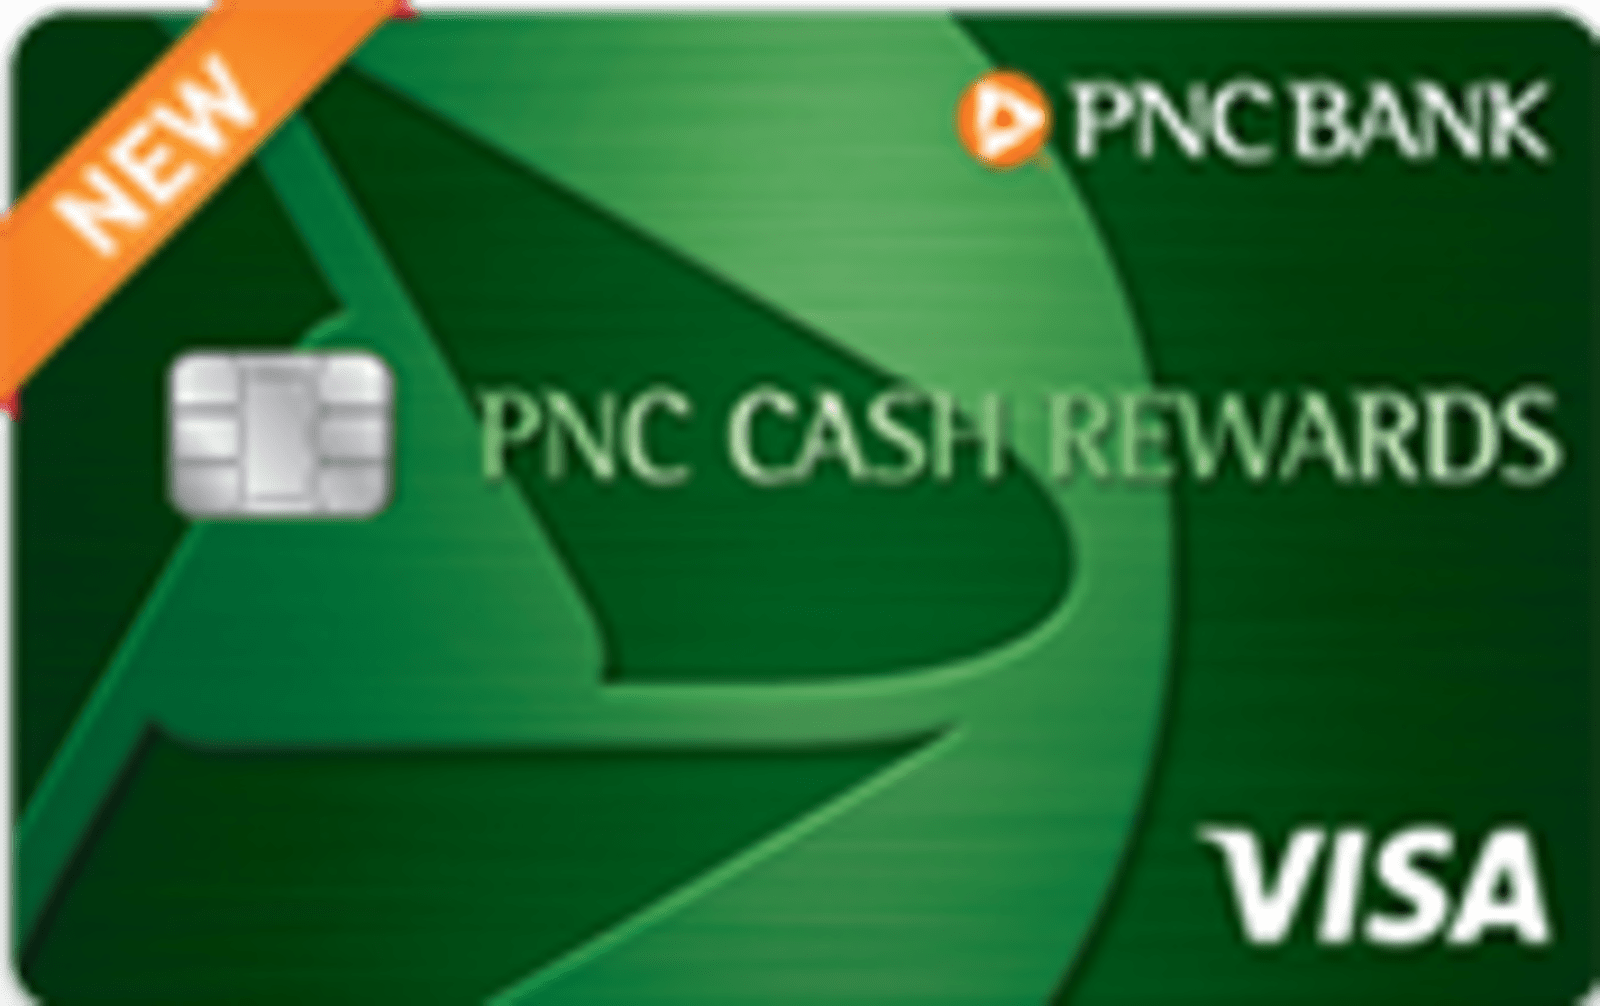 PNC Cash Rewards℠ Visa®: Is It Any Good? | Credit Card